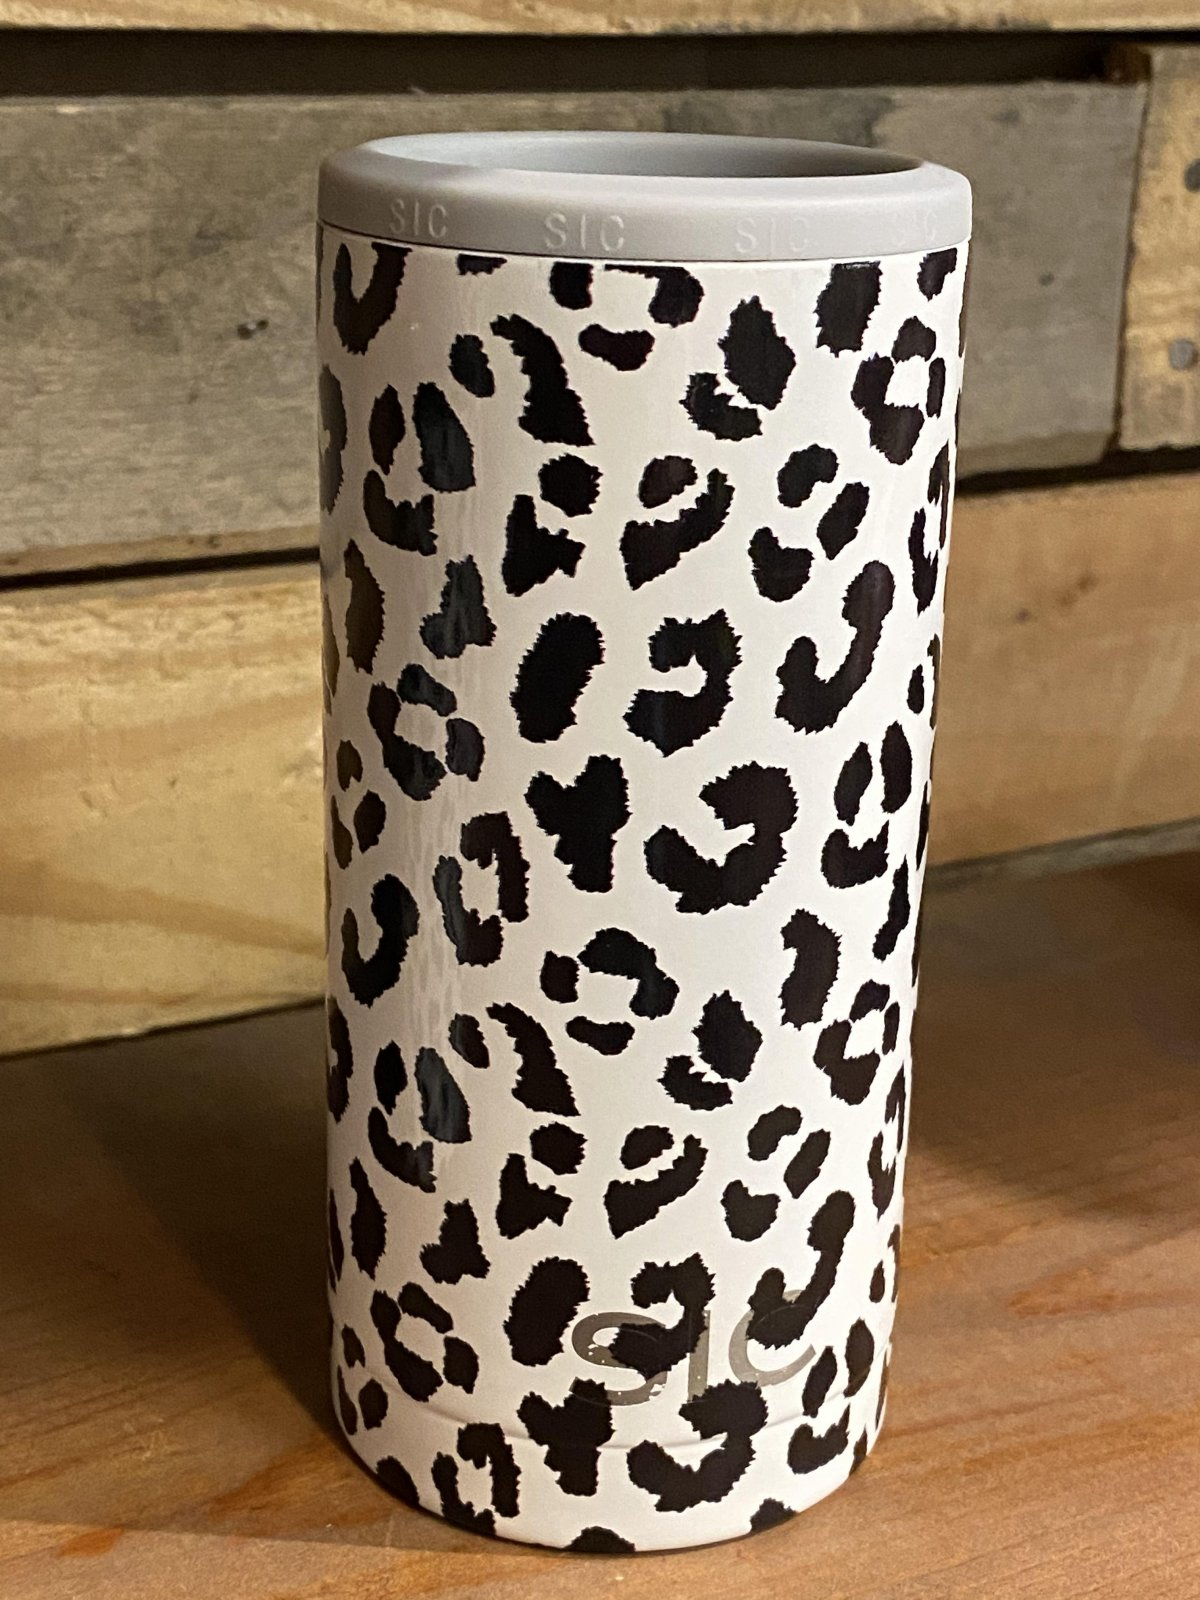 Slim Can Leopard Koozie from SIC